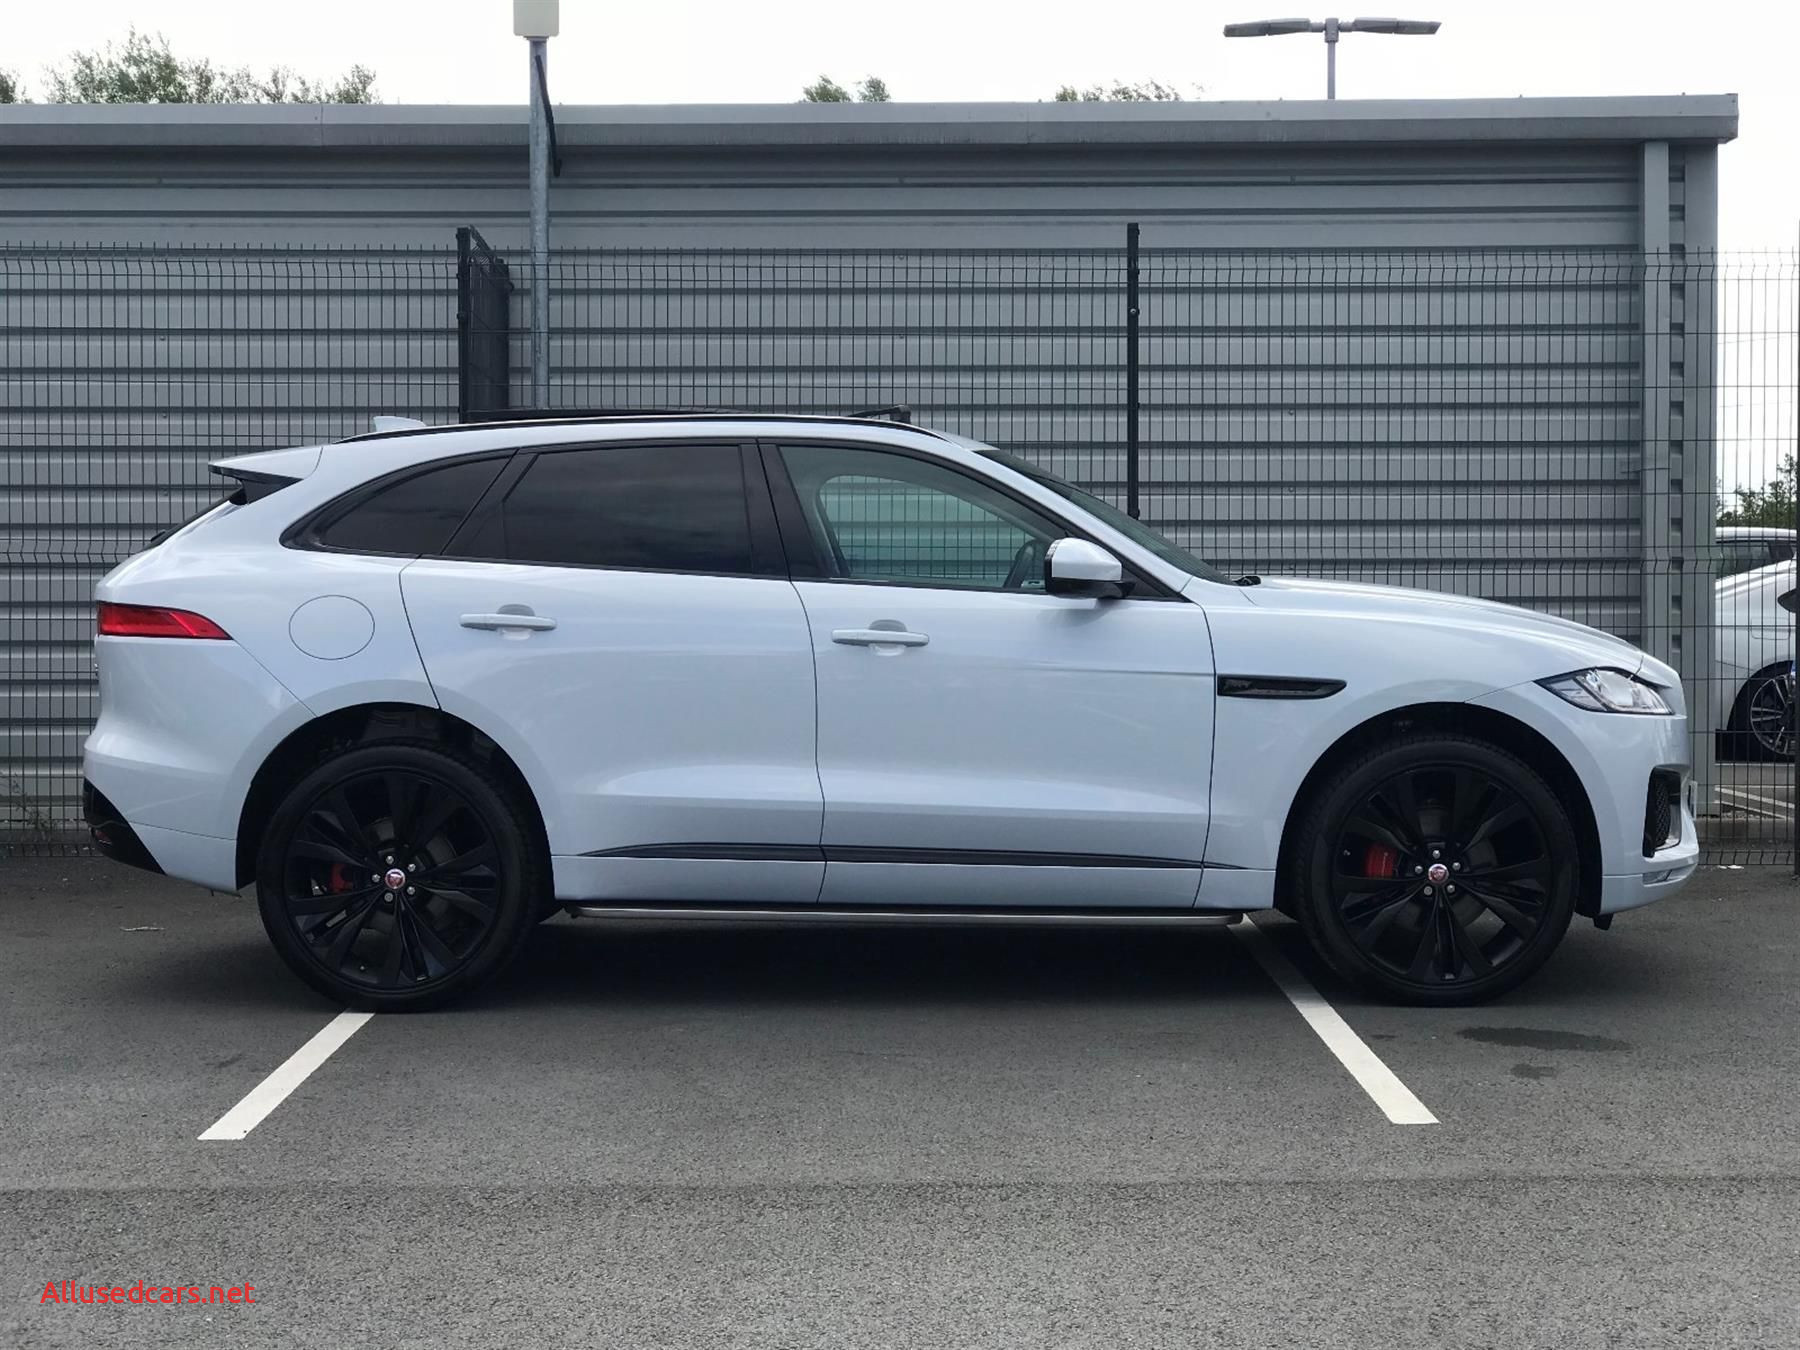 United Auto Sales New Used 2019 Jaguar F Pace 3 0d V6 S 5dr Auto Awd for Sale In